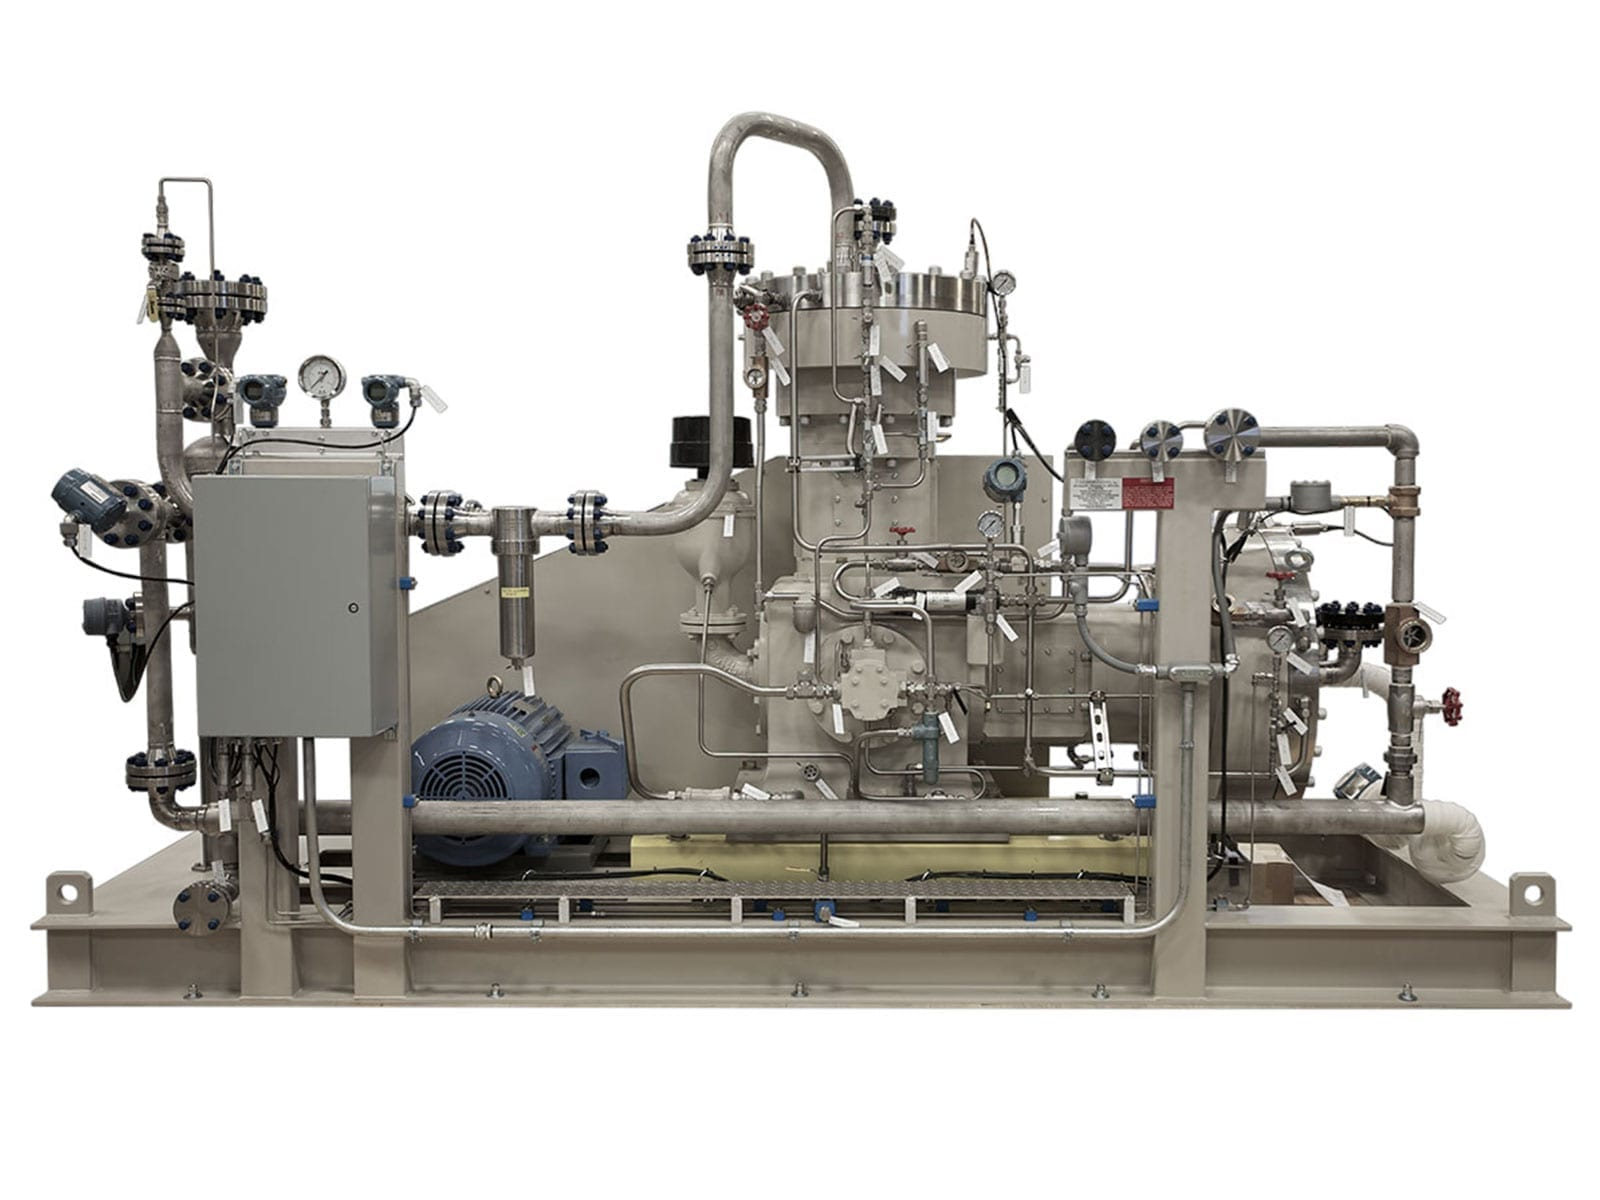 High pressure two-stage compressor pumping tetrafluoroethylene (TFE) gas